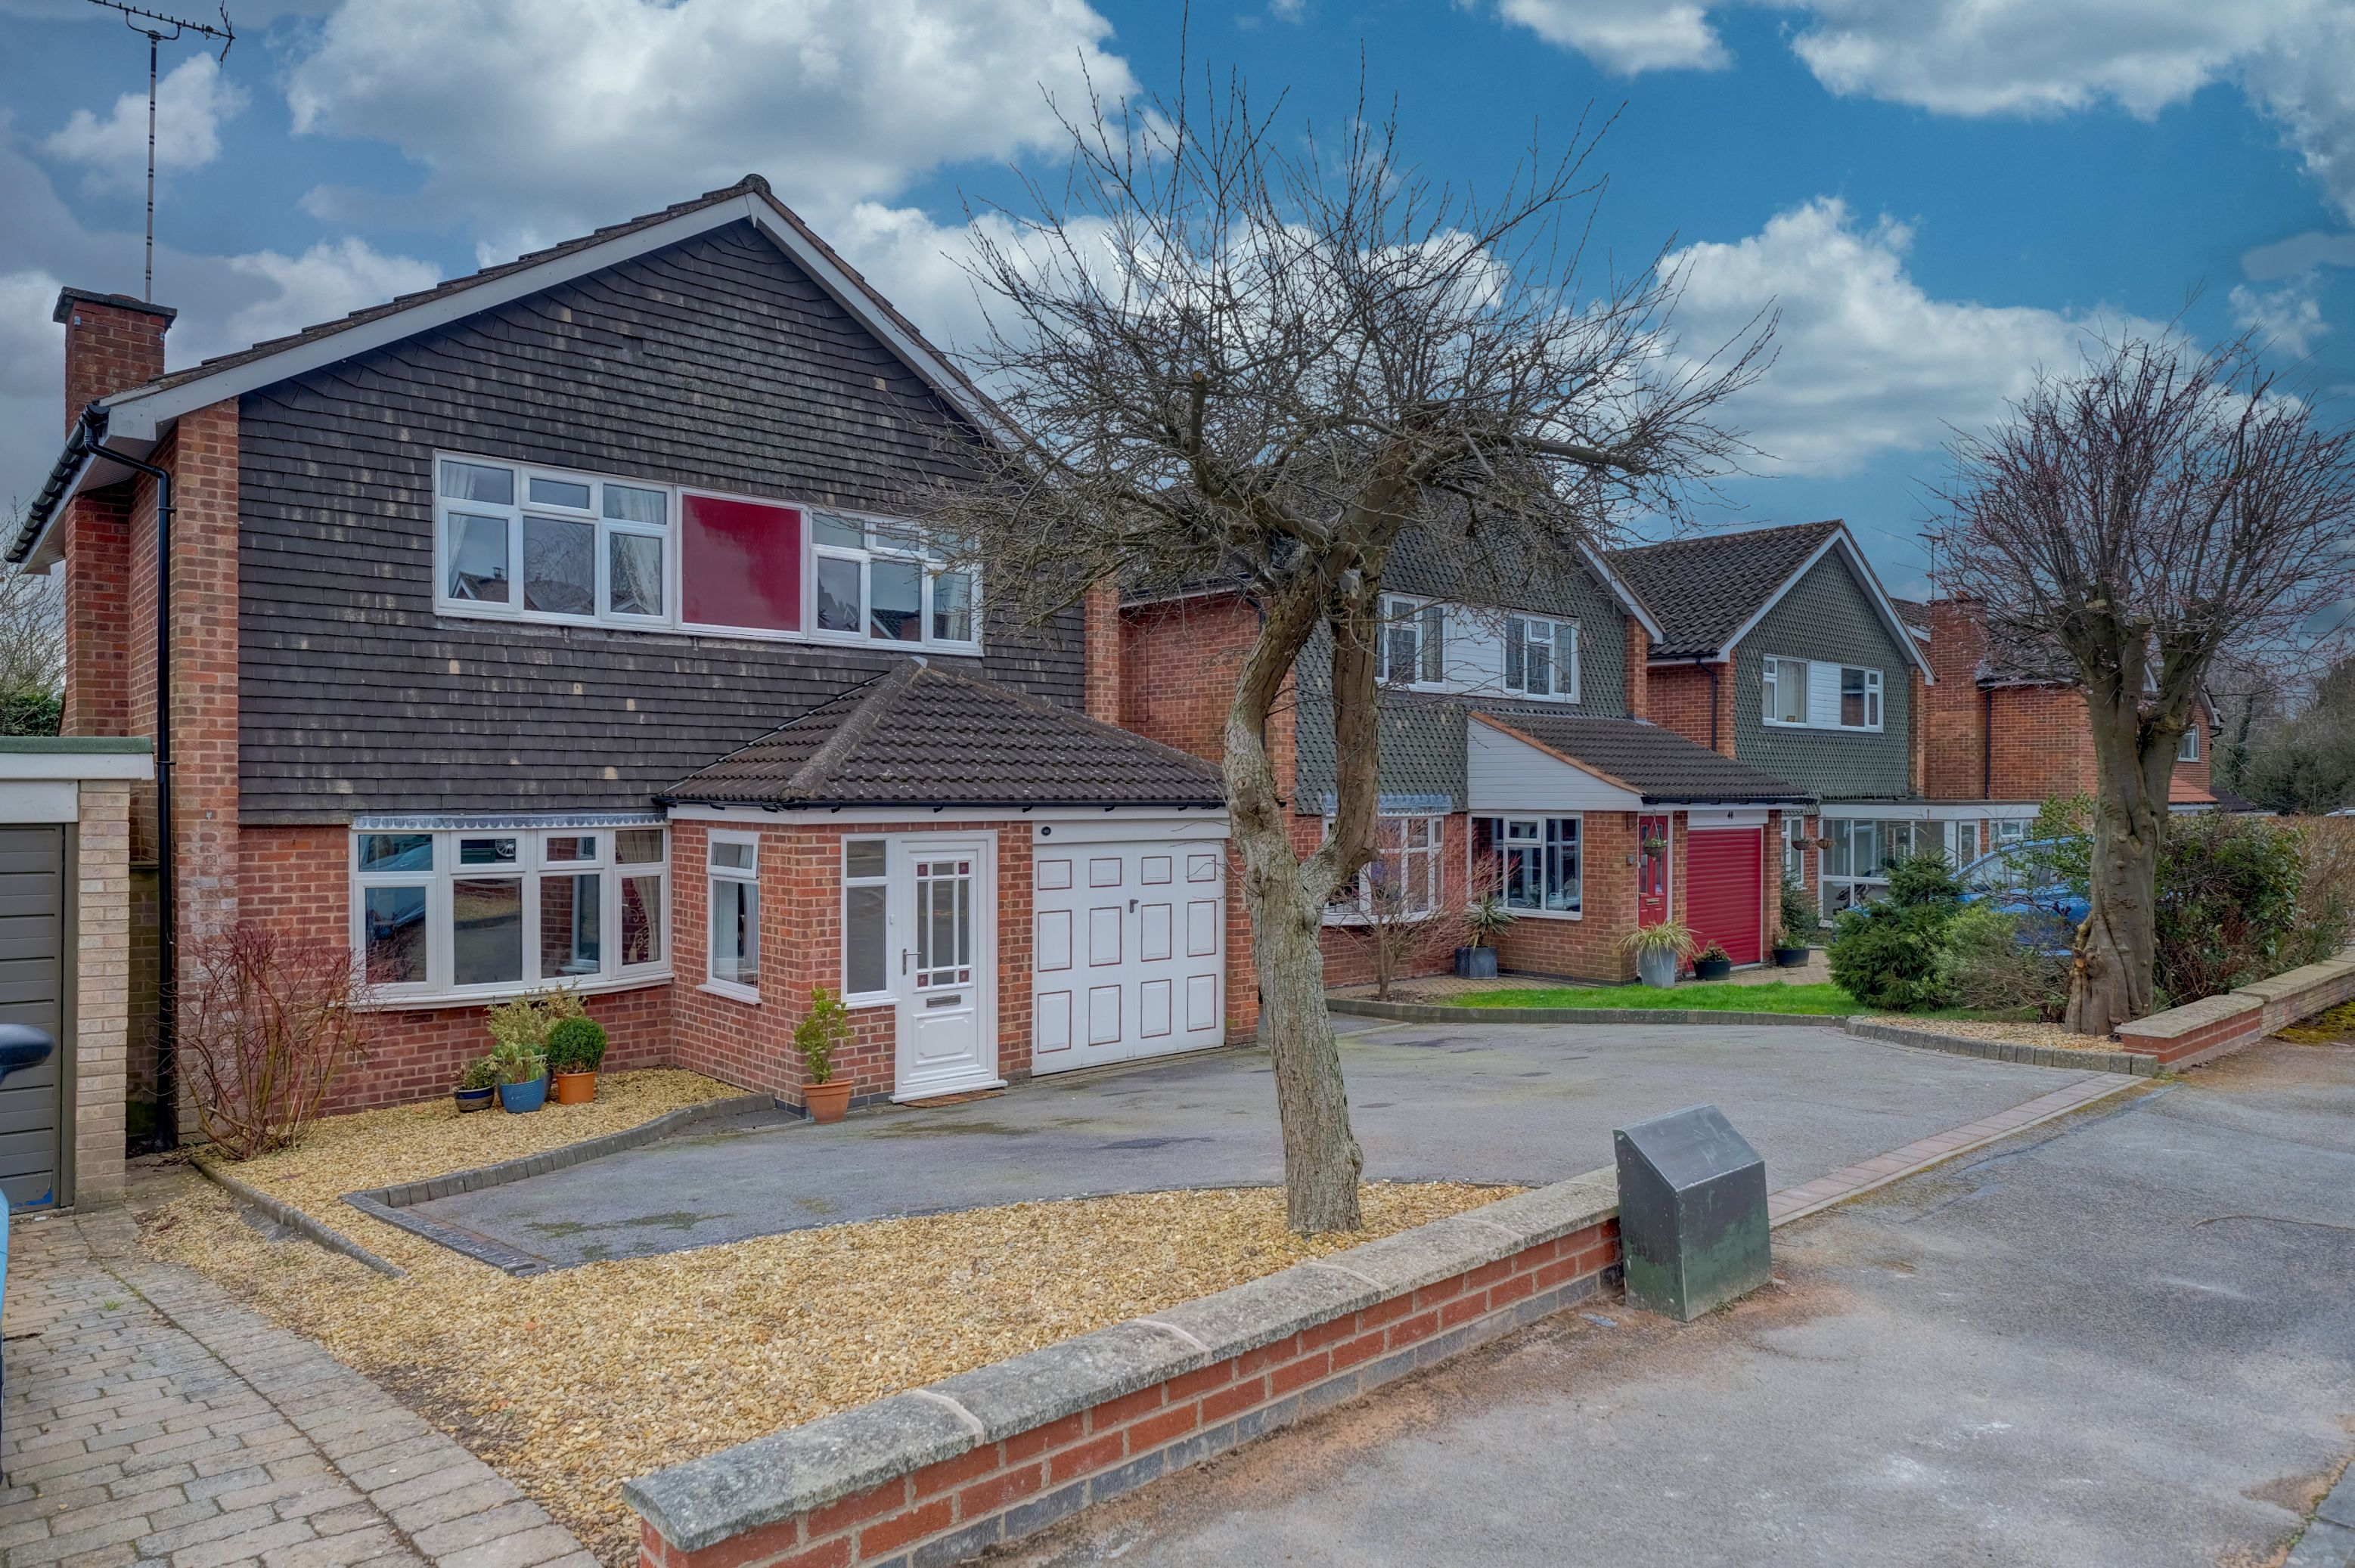 4 bed detached house for sale in Lime Grove, Kirby Muxloe, LE9, Leicester - Property Image 1